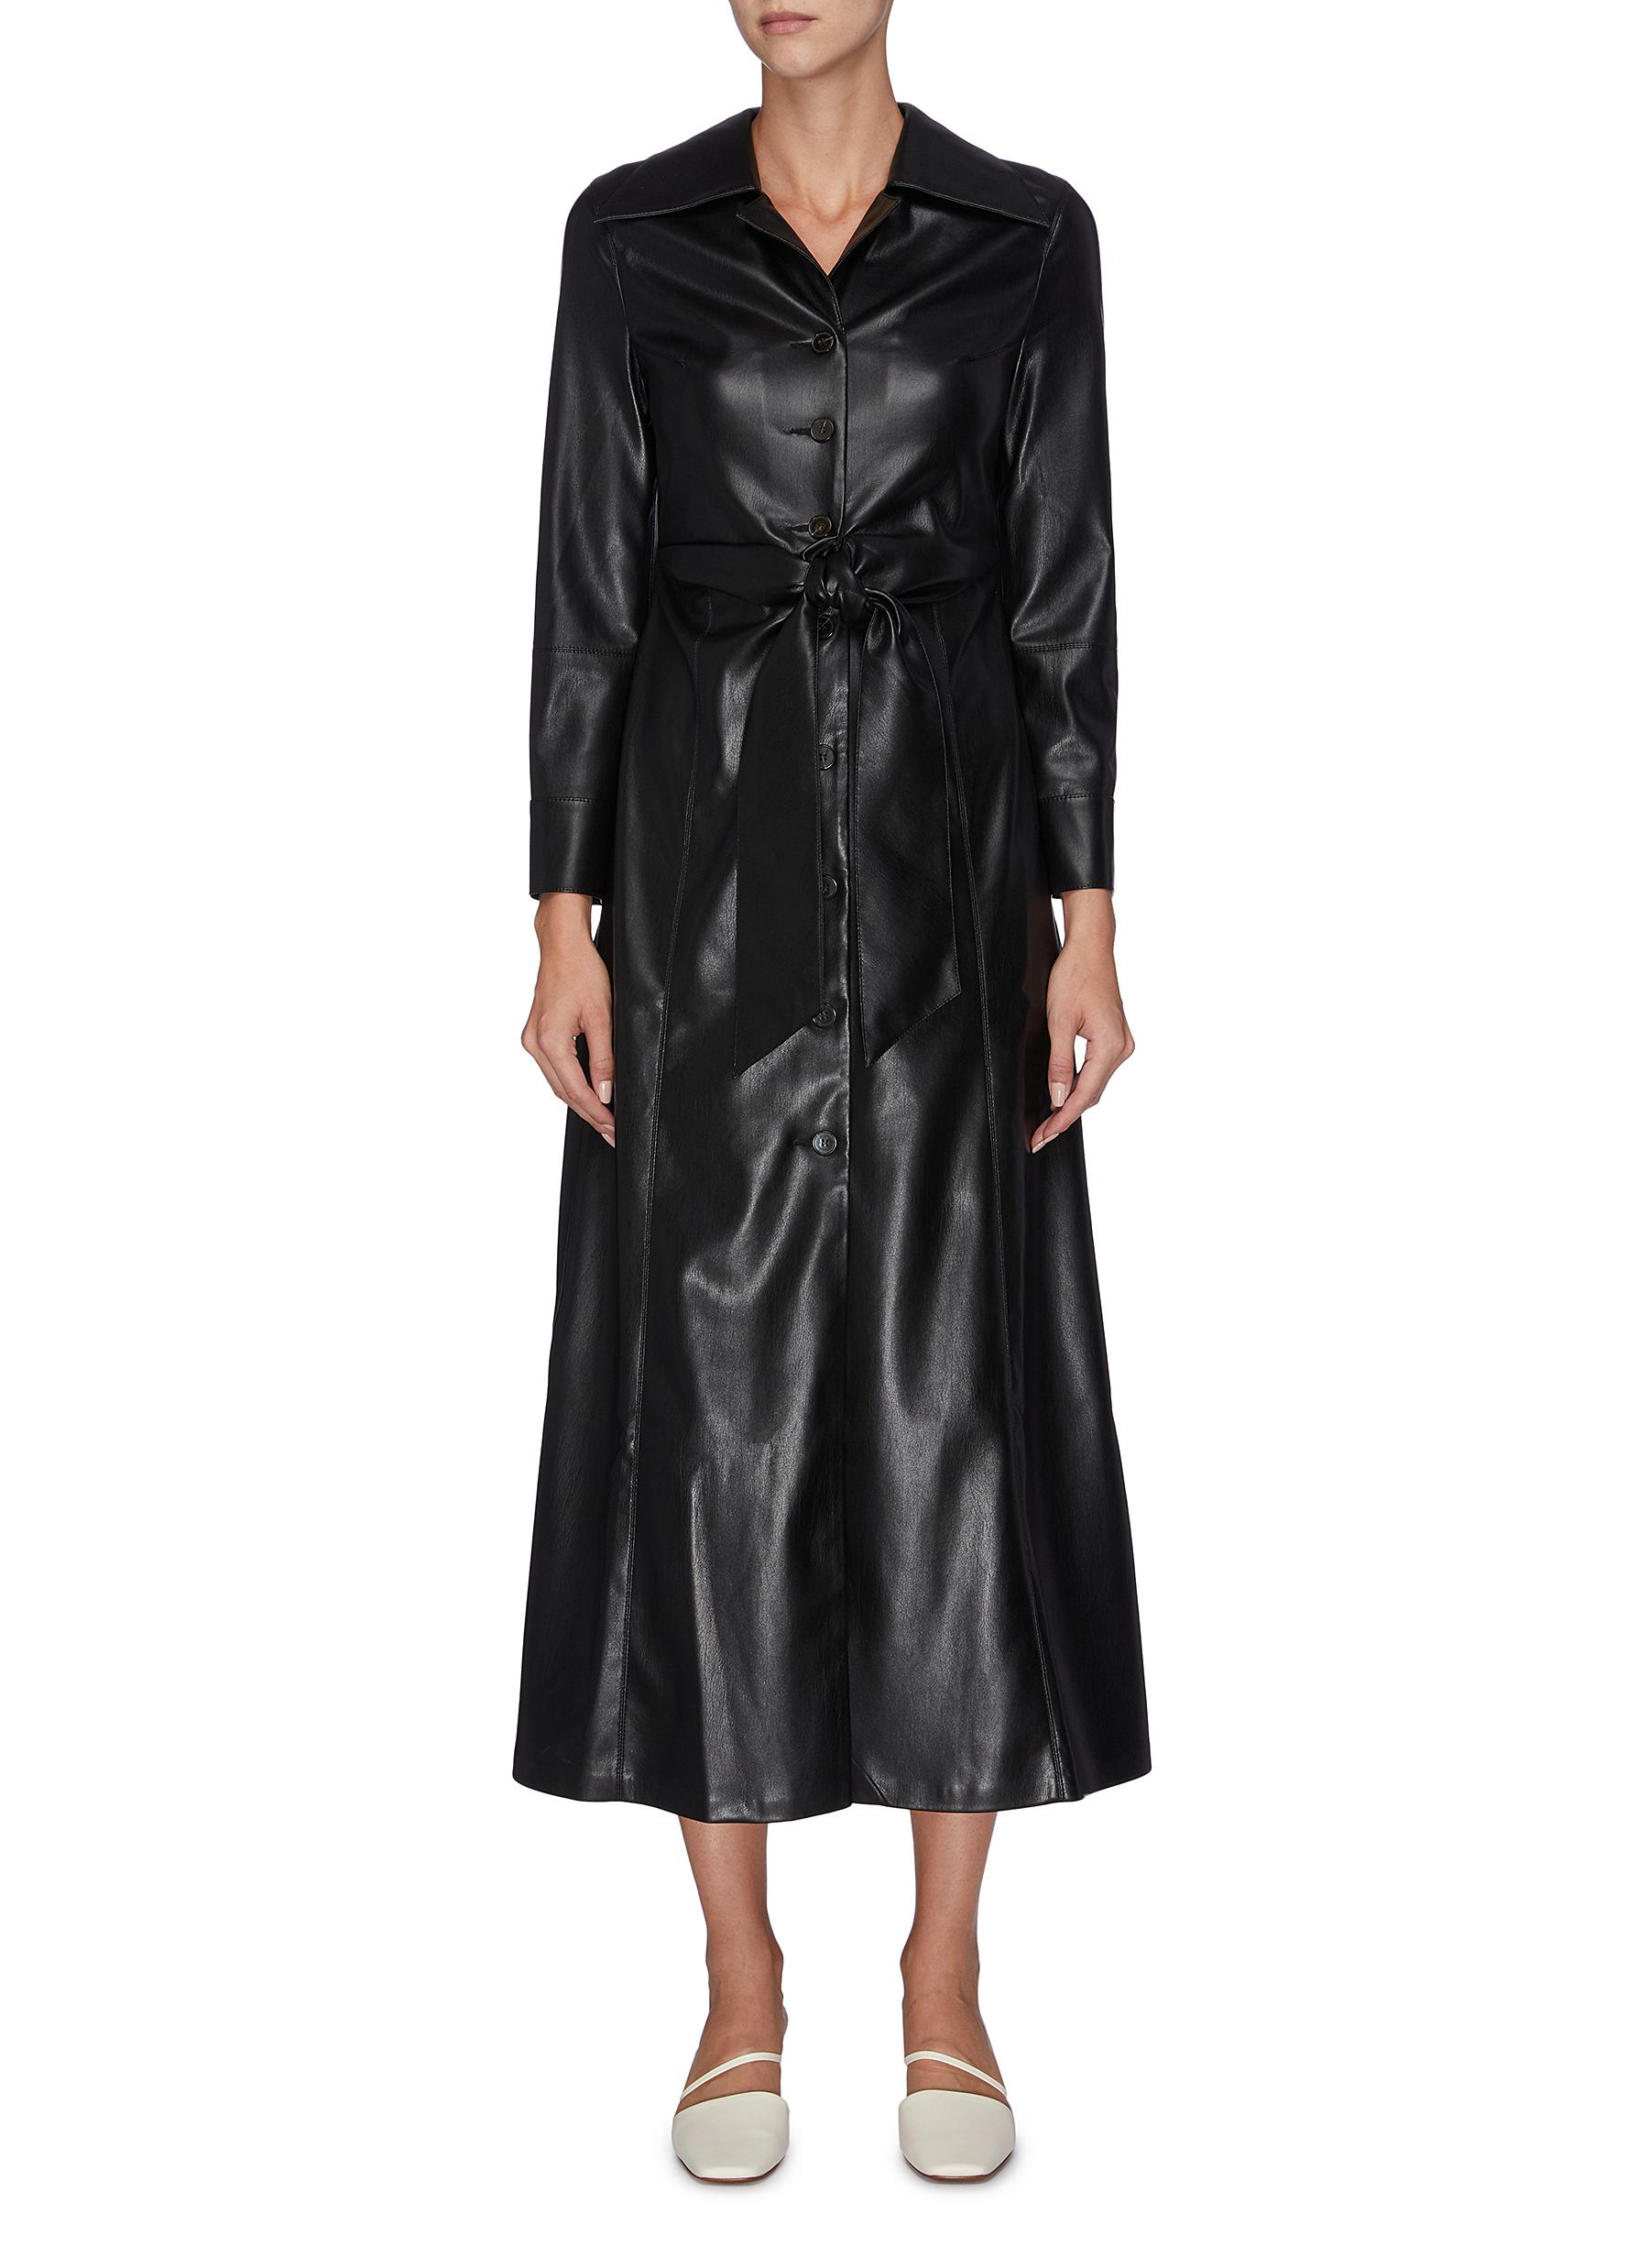 Tarot belted vegan leather dress by Nanushka